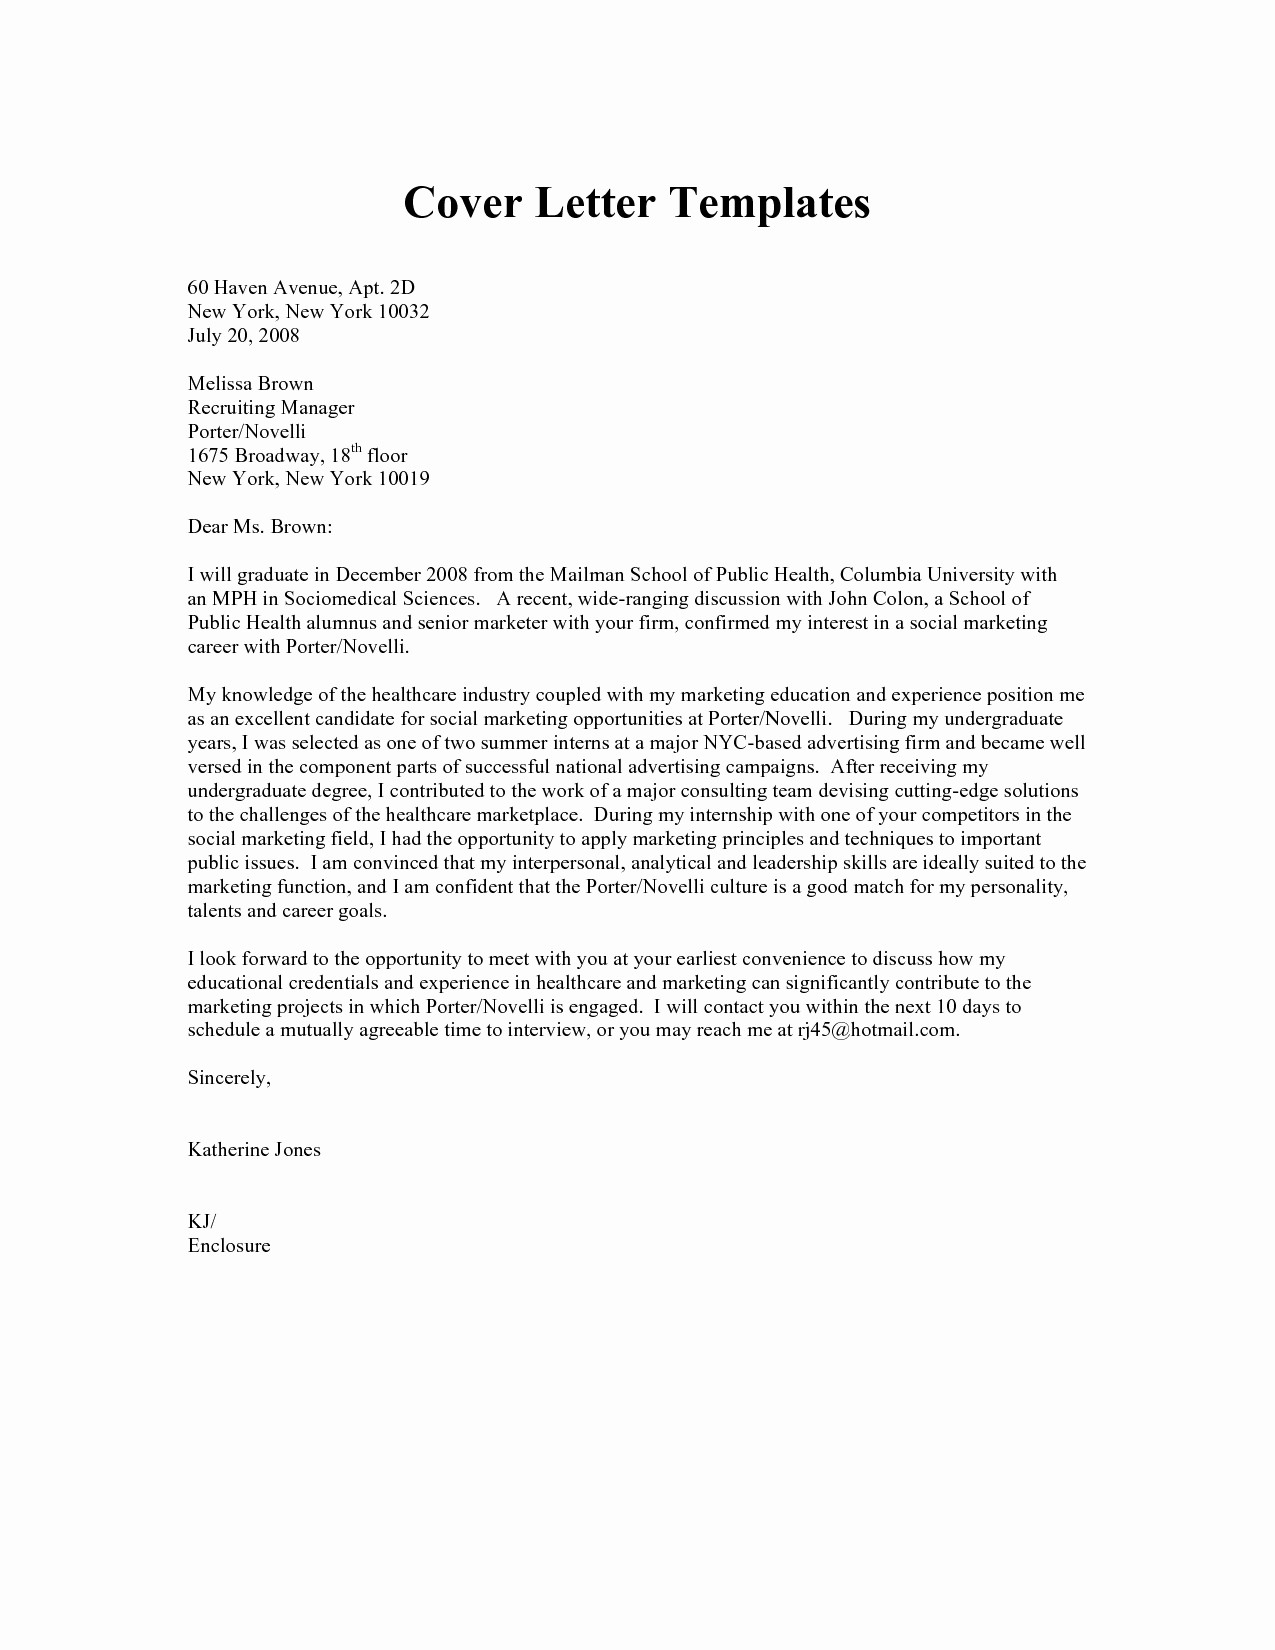 Employment Verification Letter Template Microsoft - Confirmation Job Letter Save Summer associate Cover Letter 23 Od